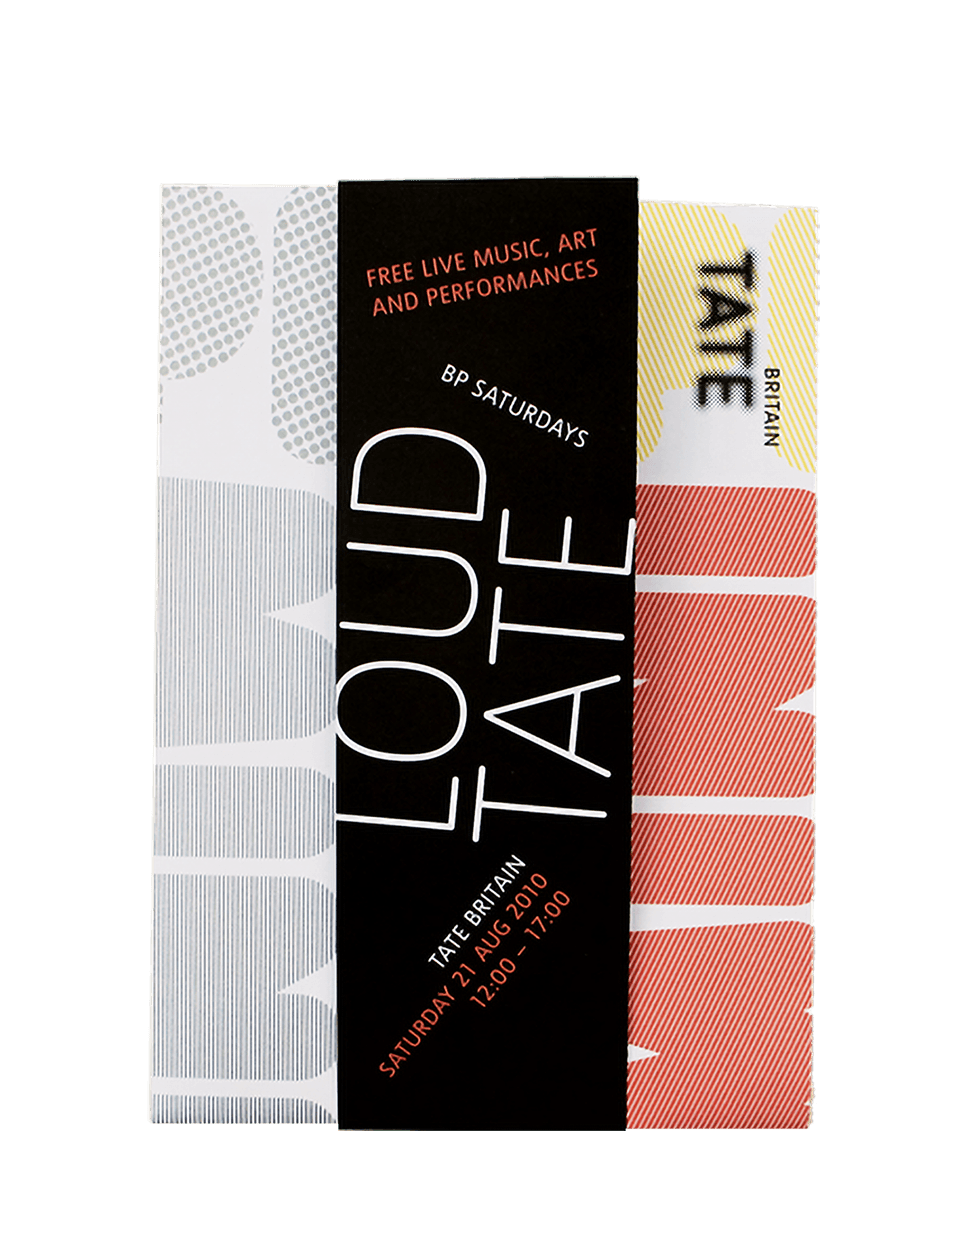 Tate - Loud Tate Festival - branding and design